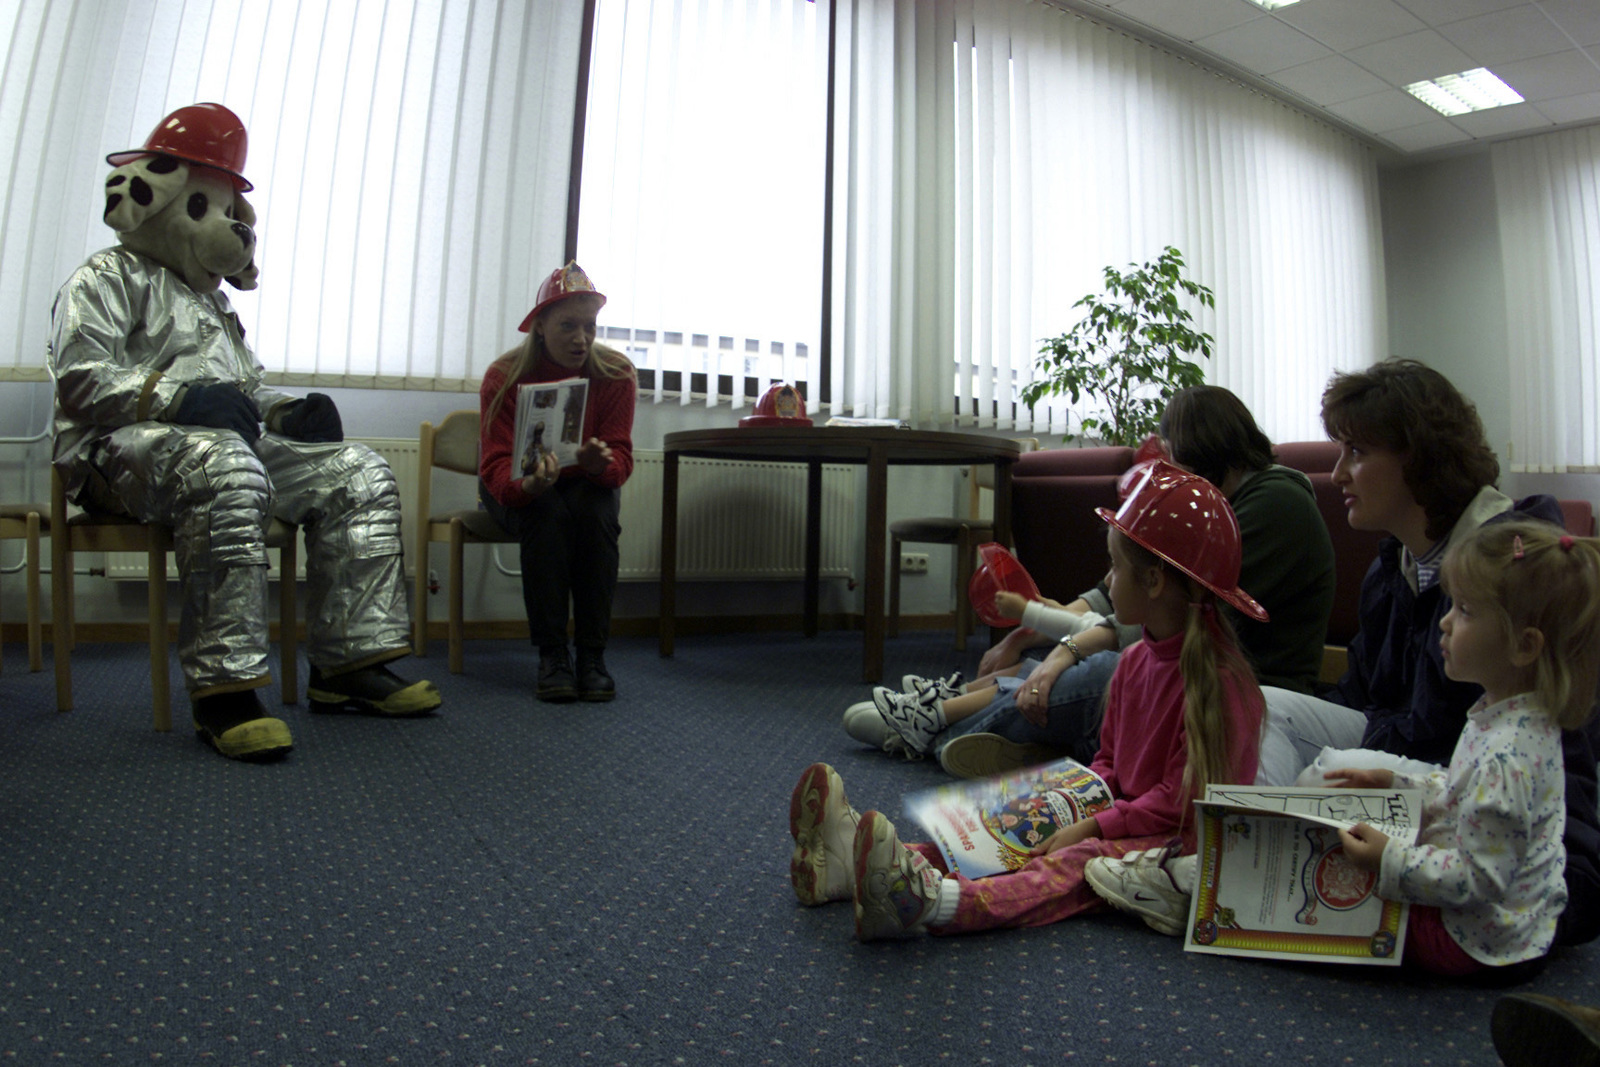 """Rentia Jones (far right), a Library Technician at Spangdahlem AB, Germany and """"Sparky the Fire Dog"""" read stories to elementary school children and parents during a fire prevention awareness program, sponsored by the 52nd Civil Engineers Squadron, at Spangdahlem AB, Germany"""